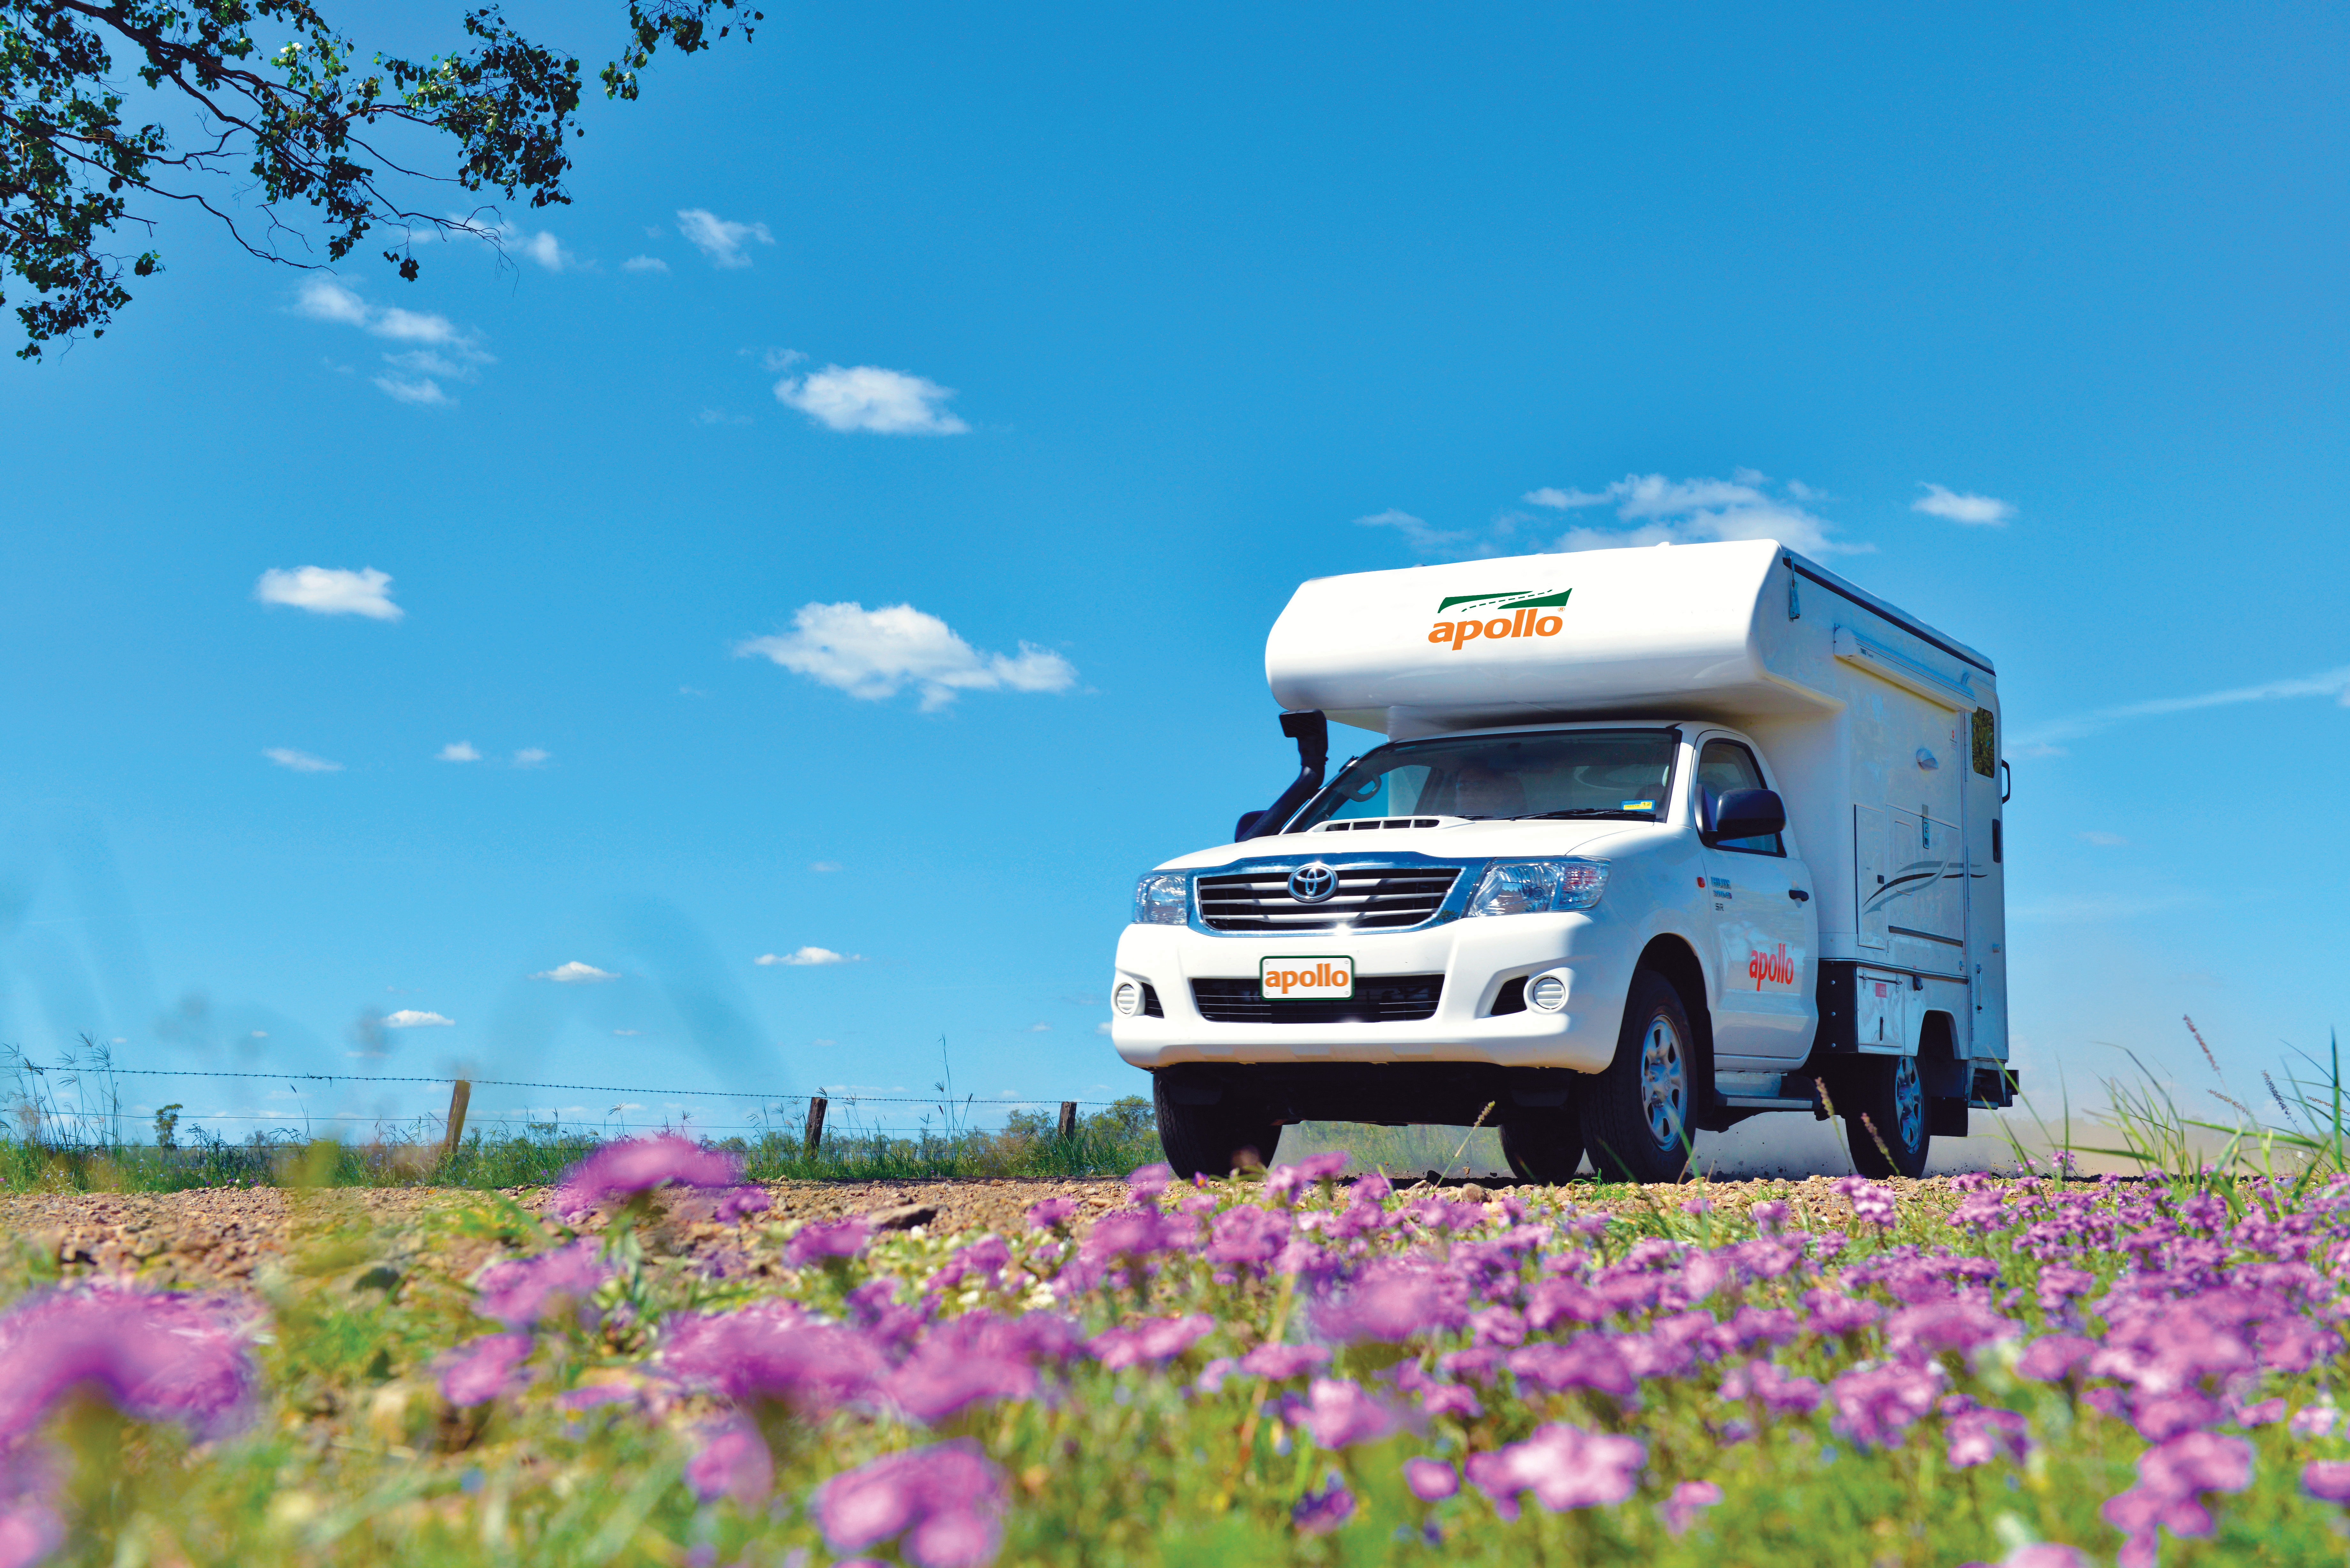 Apollo Motorhome Holidays Australia, Adventure Camper External 4